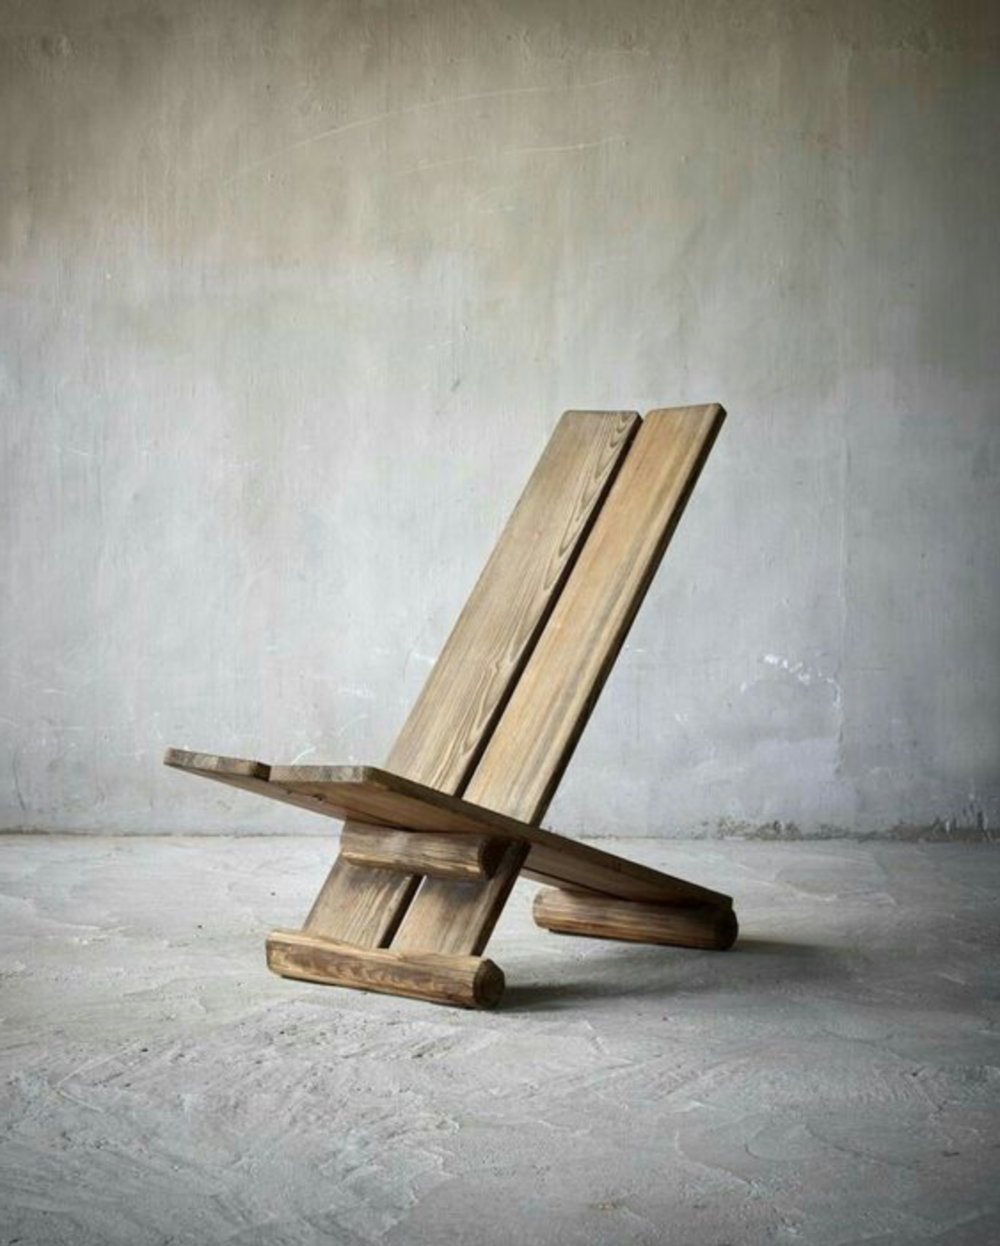 PRESSURE/ VIKING CHAIR -  As sophisticated and uncomplicated as furniture construction gets. This paradox may seem a tad dramatized but look at this chair. Two boards joined by slotting a very long tenon through a simple mortise. The 'Stargazer' or 'Viking' chair is traced back to the Viking Age (c. 800-1050AD) and hallmarked by its 'X' construction. Archeologists say it was designed to be transportable for long oceanic voyages. And we thought IKEA invented flat pack shipping.